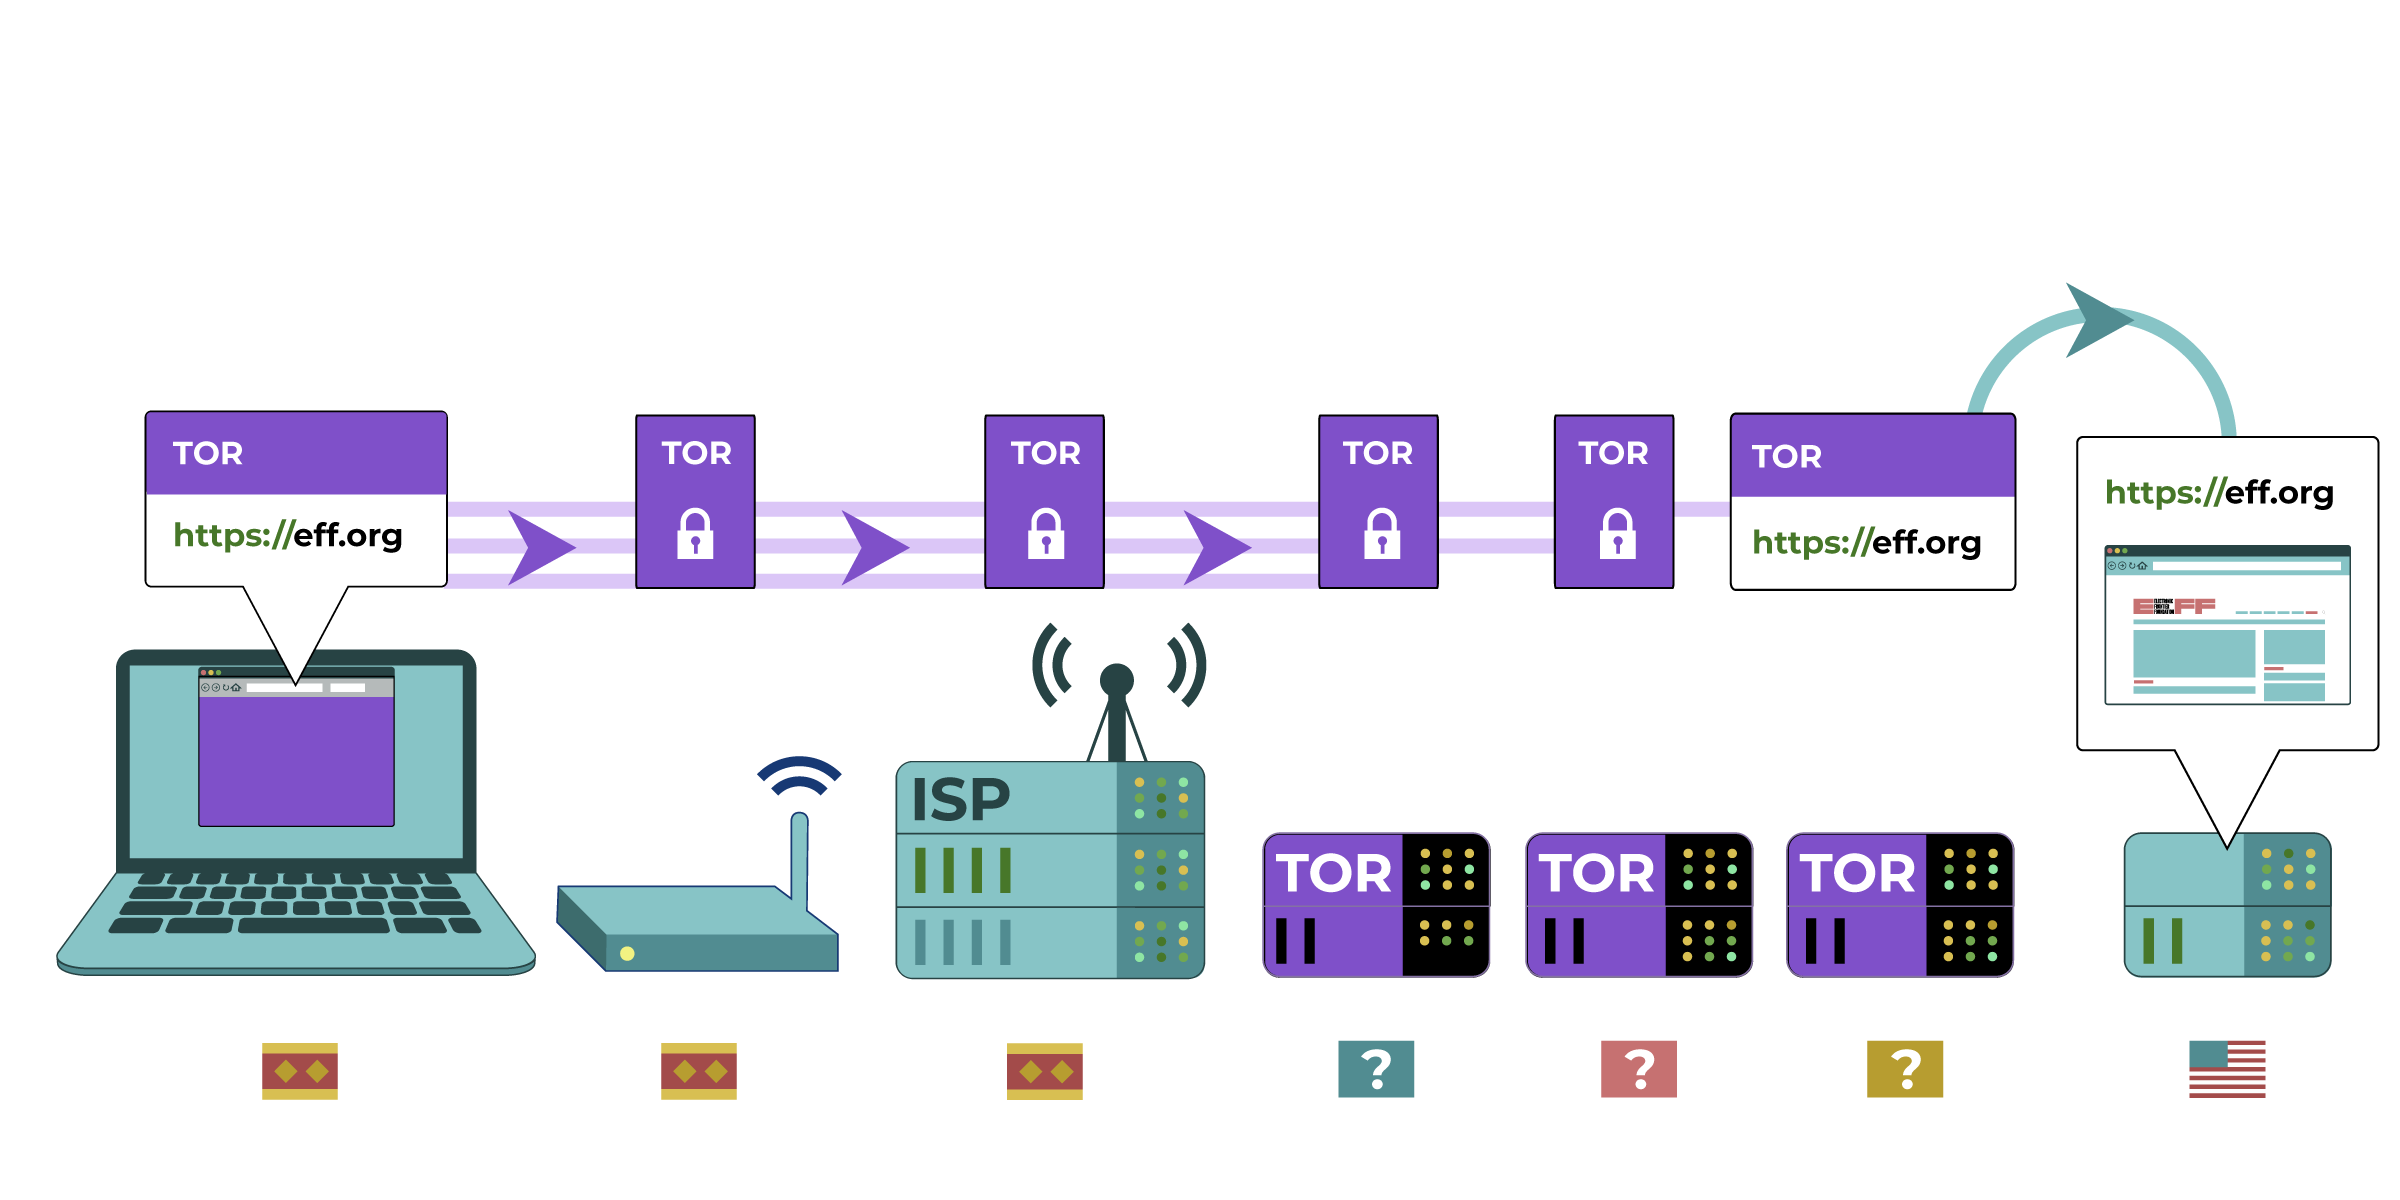 The request is encrypted and passes through the router, ISP server, three Tor servers, before landing at the intended eff.org server.